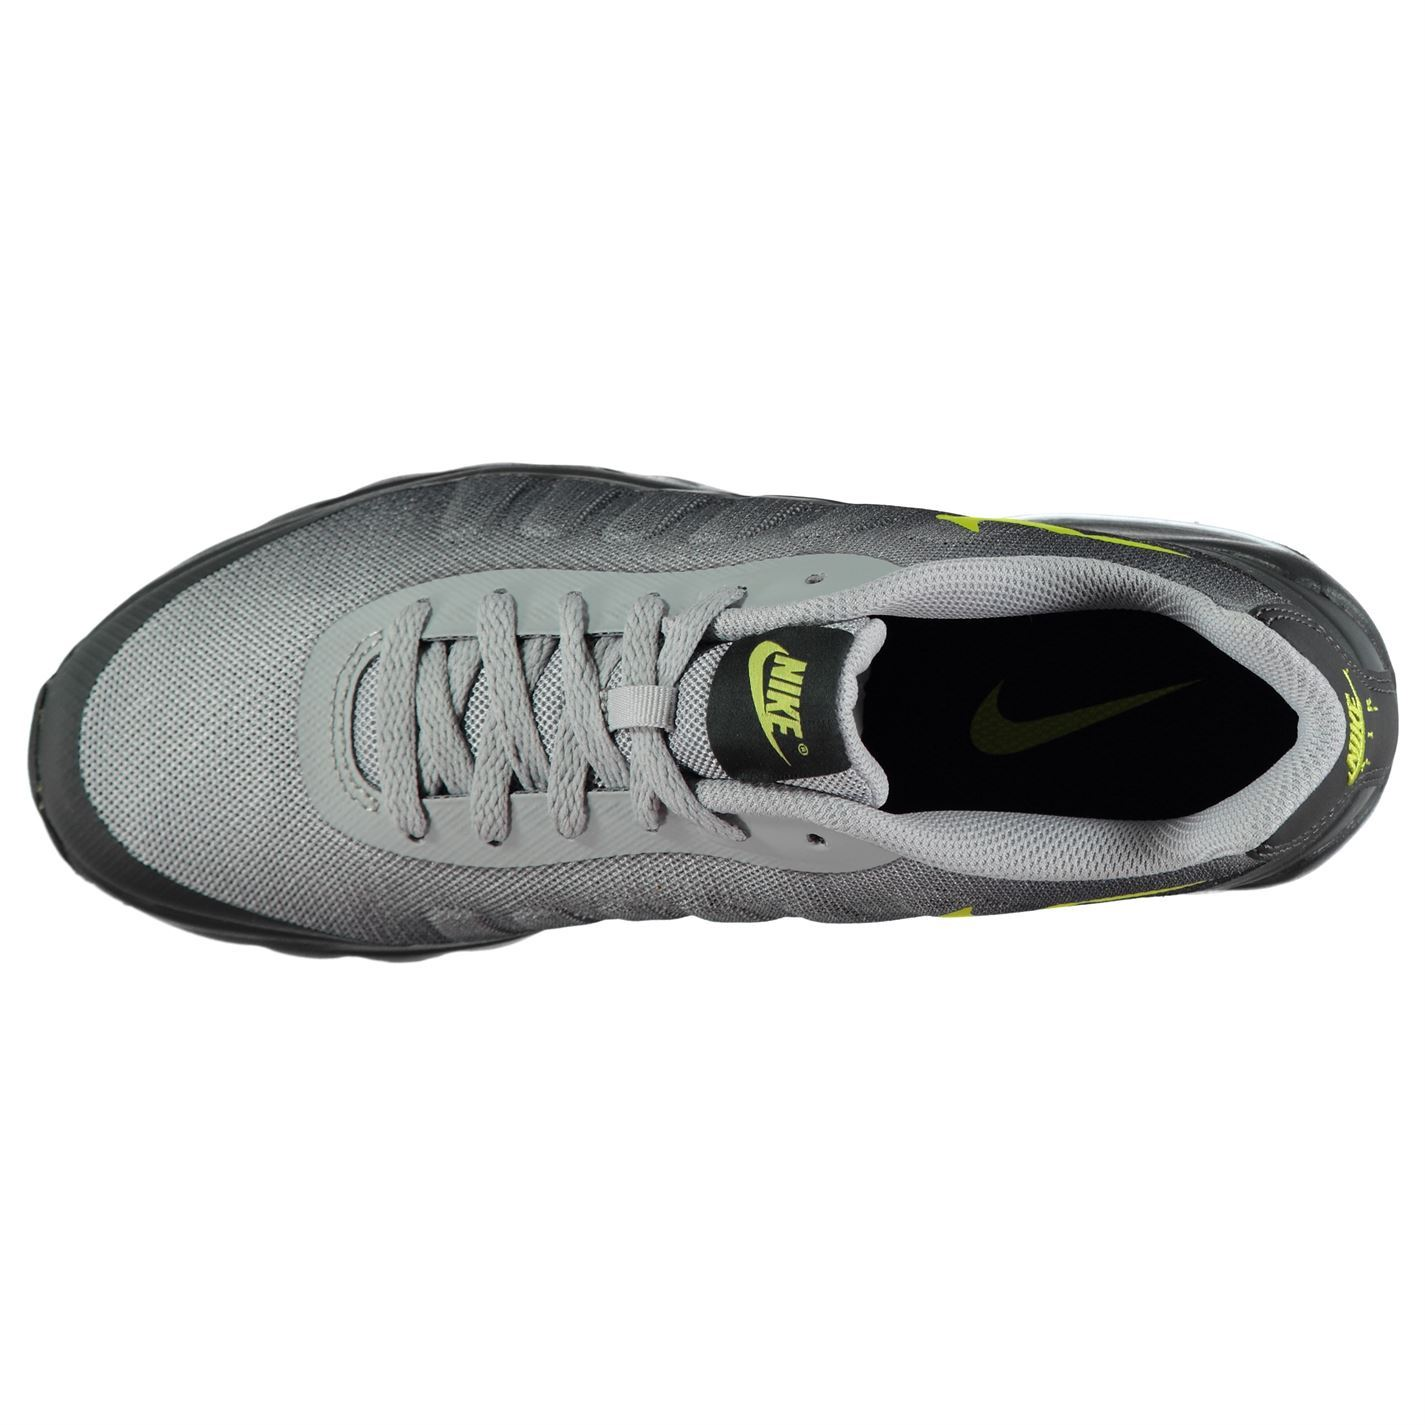 online store 7068b a3488 ... Nike Air Max Invigor Print Trainers Mens Grey Volt Athletic Sneakers  Shoes